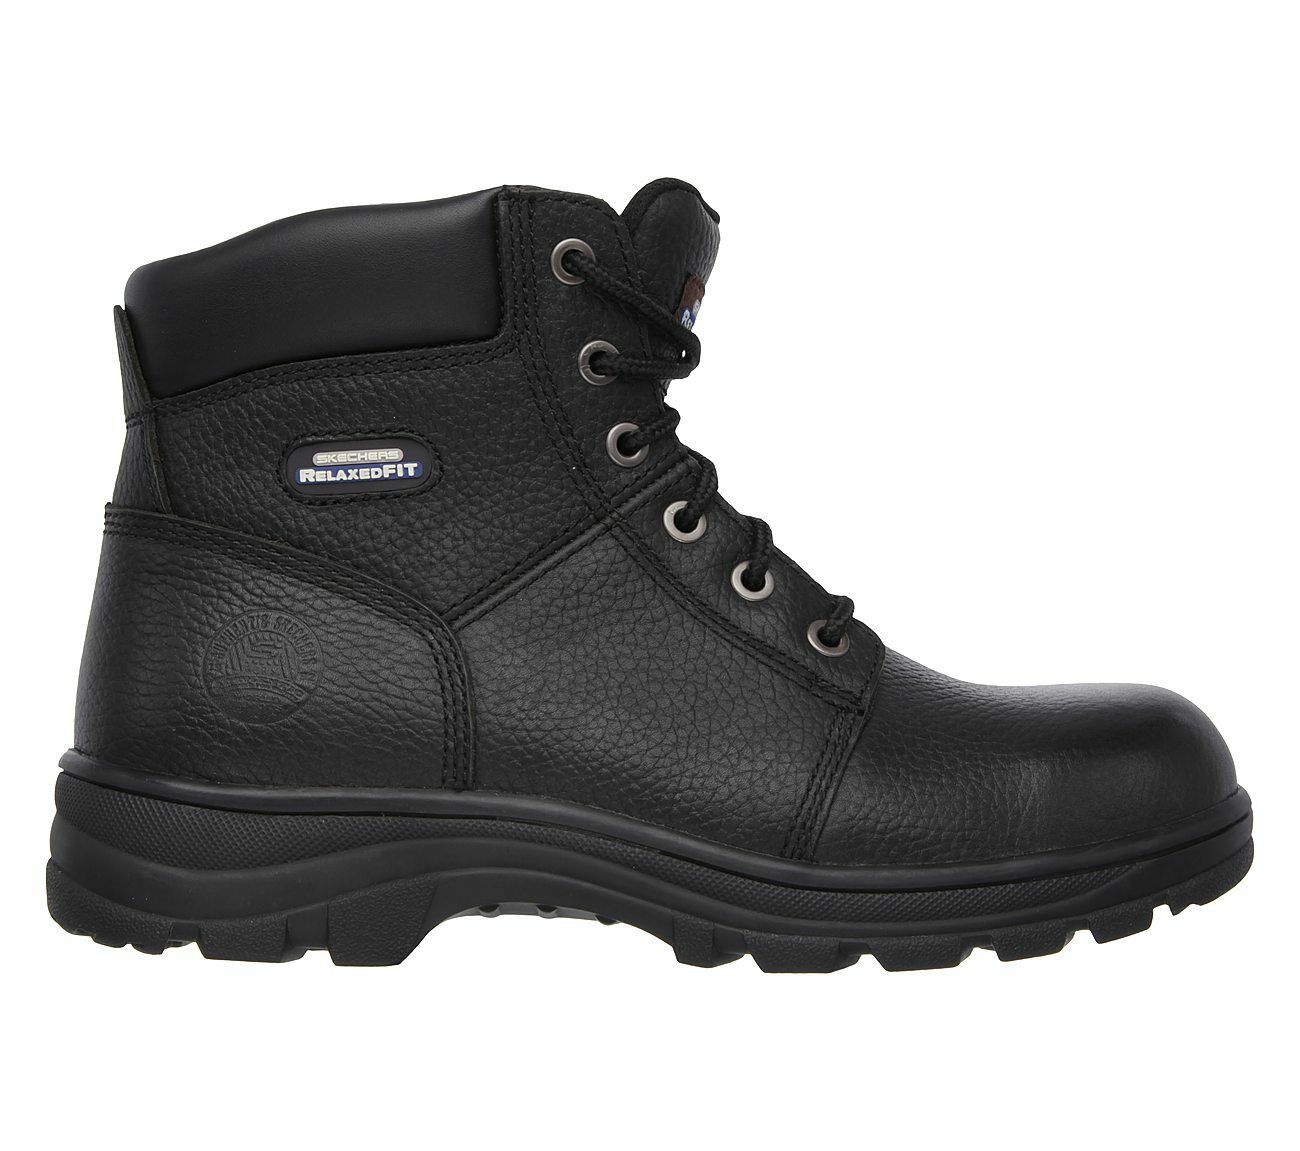 Sketchers Workshire Safety Boot